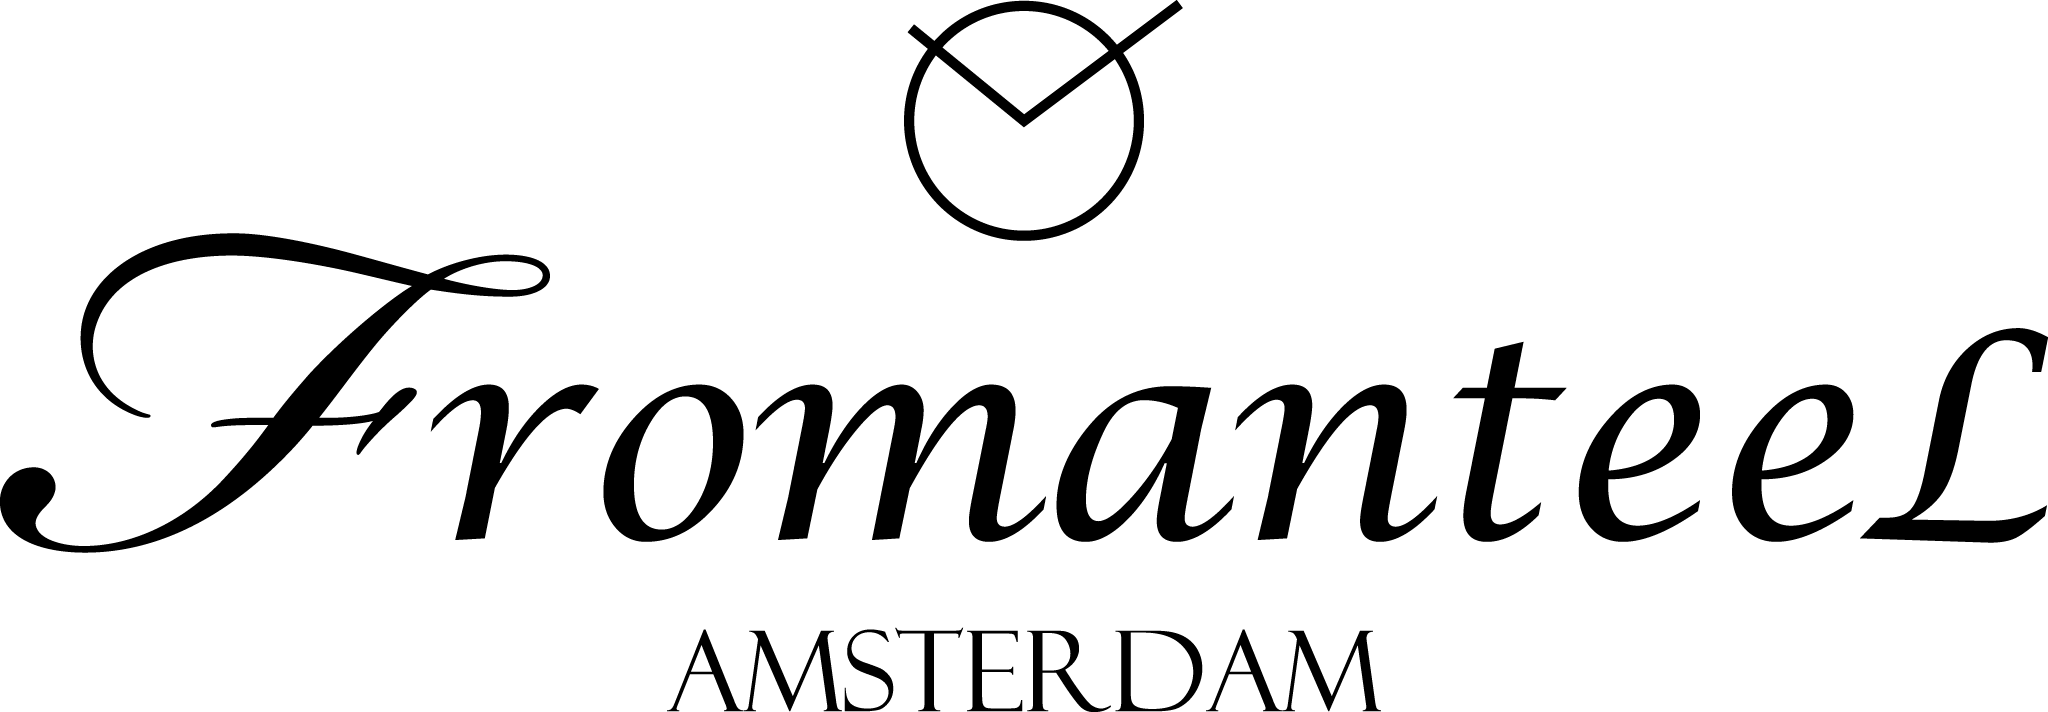 Fromanteel Watches Sends Its New Pilot Watch Out Onto The Runway